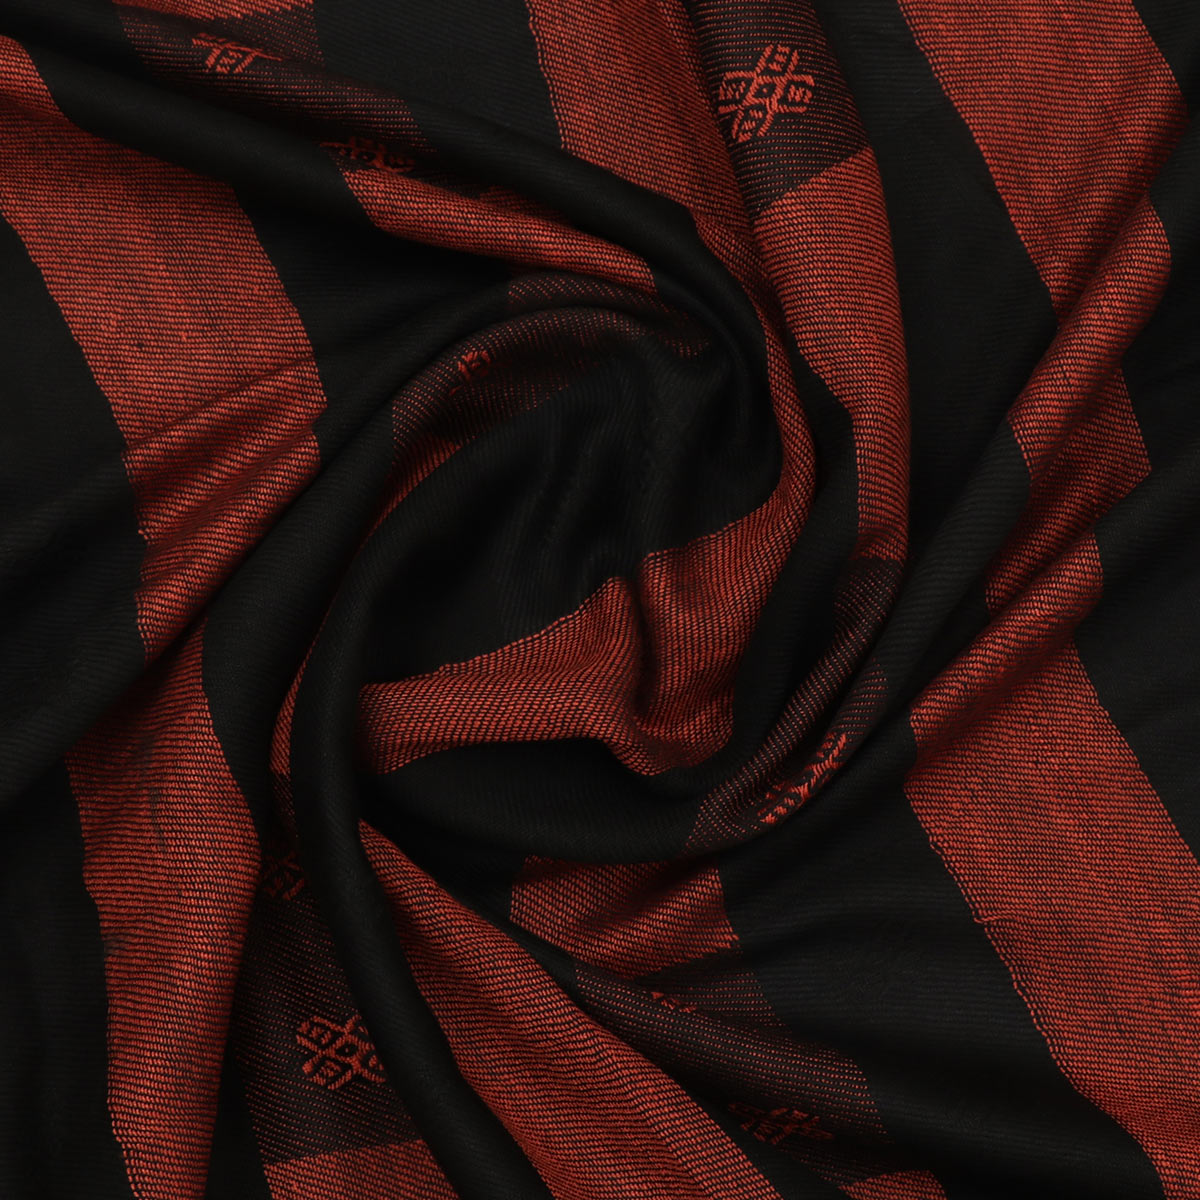 Double Sided Semi Pashmina Stole Black and Brown with Simple design for Rs.Rs. 750.00 | Stole by Prashanti Sarees